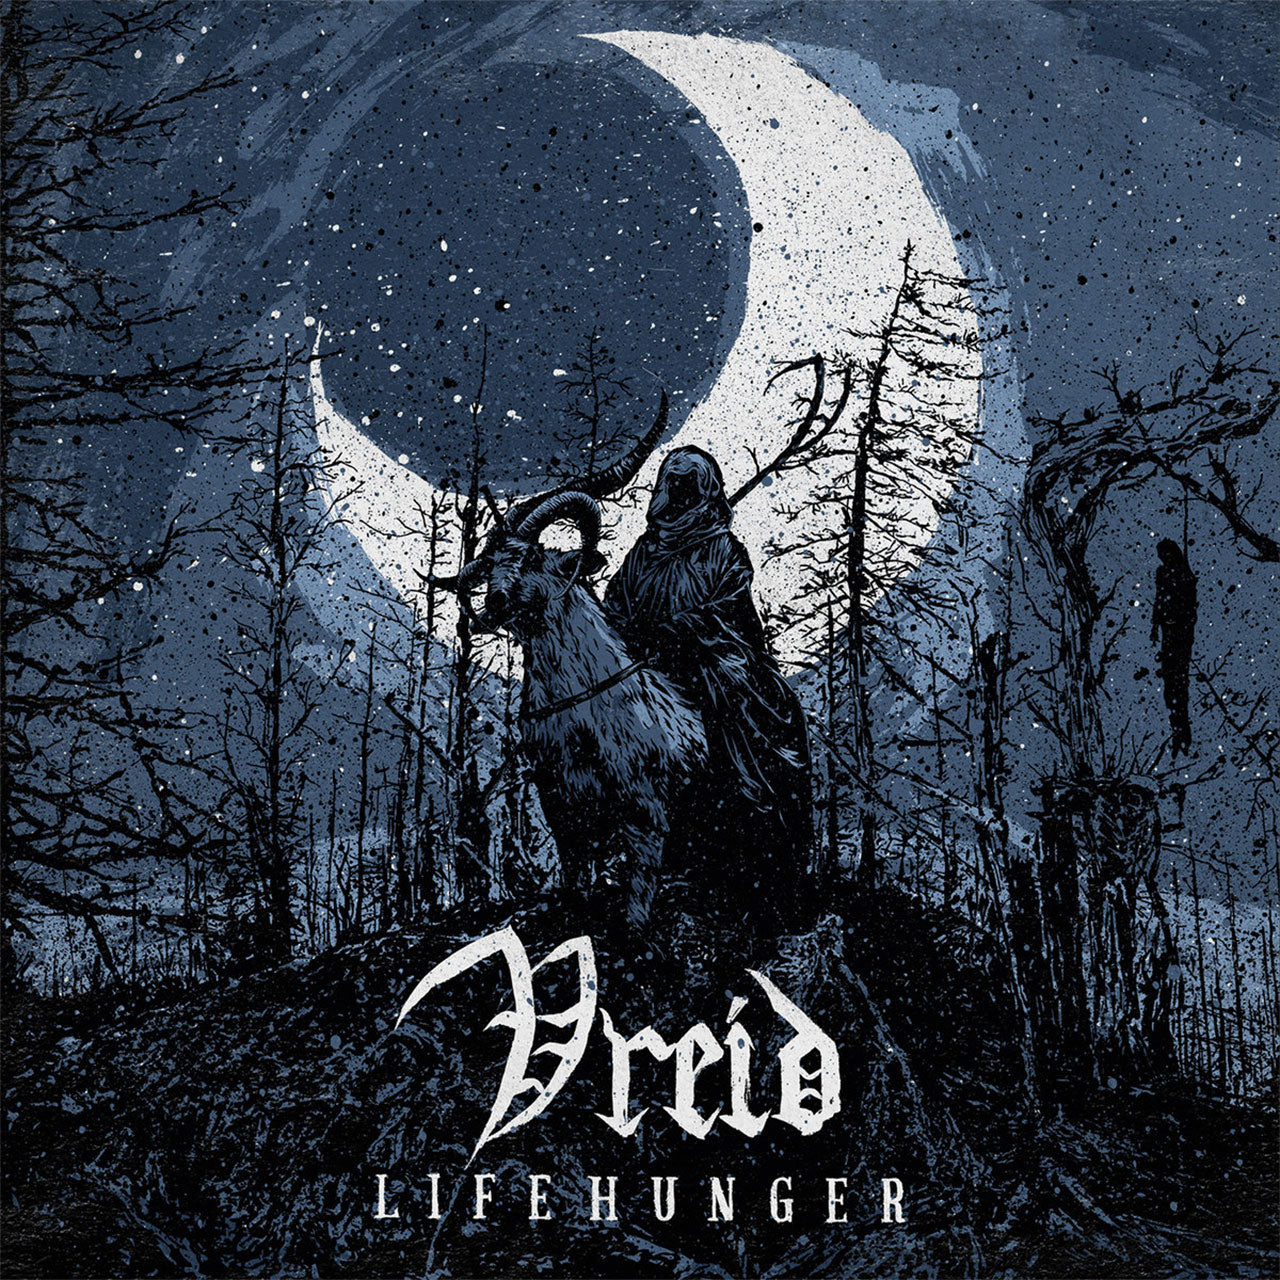 Vreid - Lifehunger (White Edition) (LP)